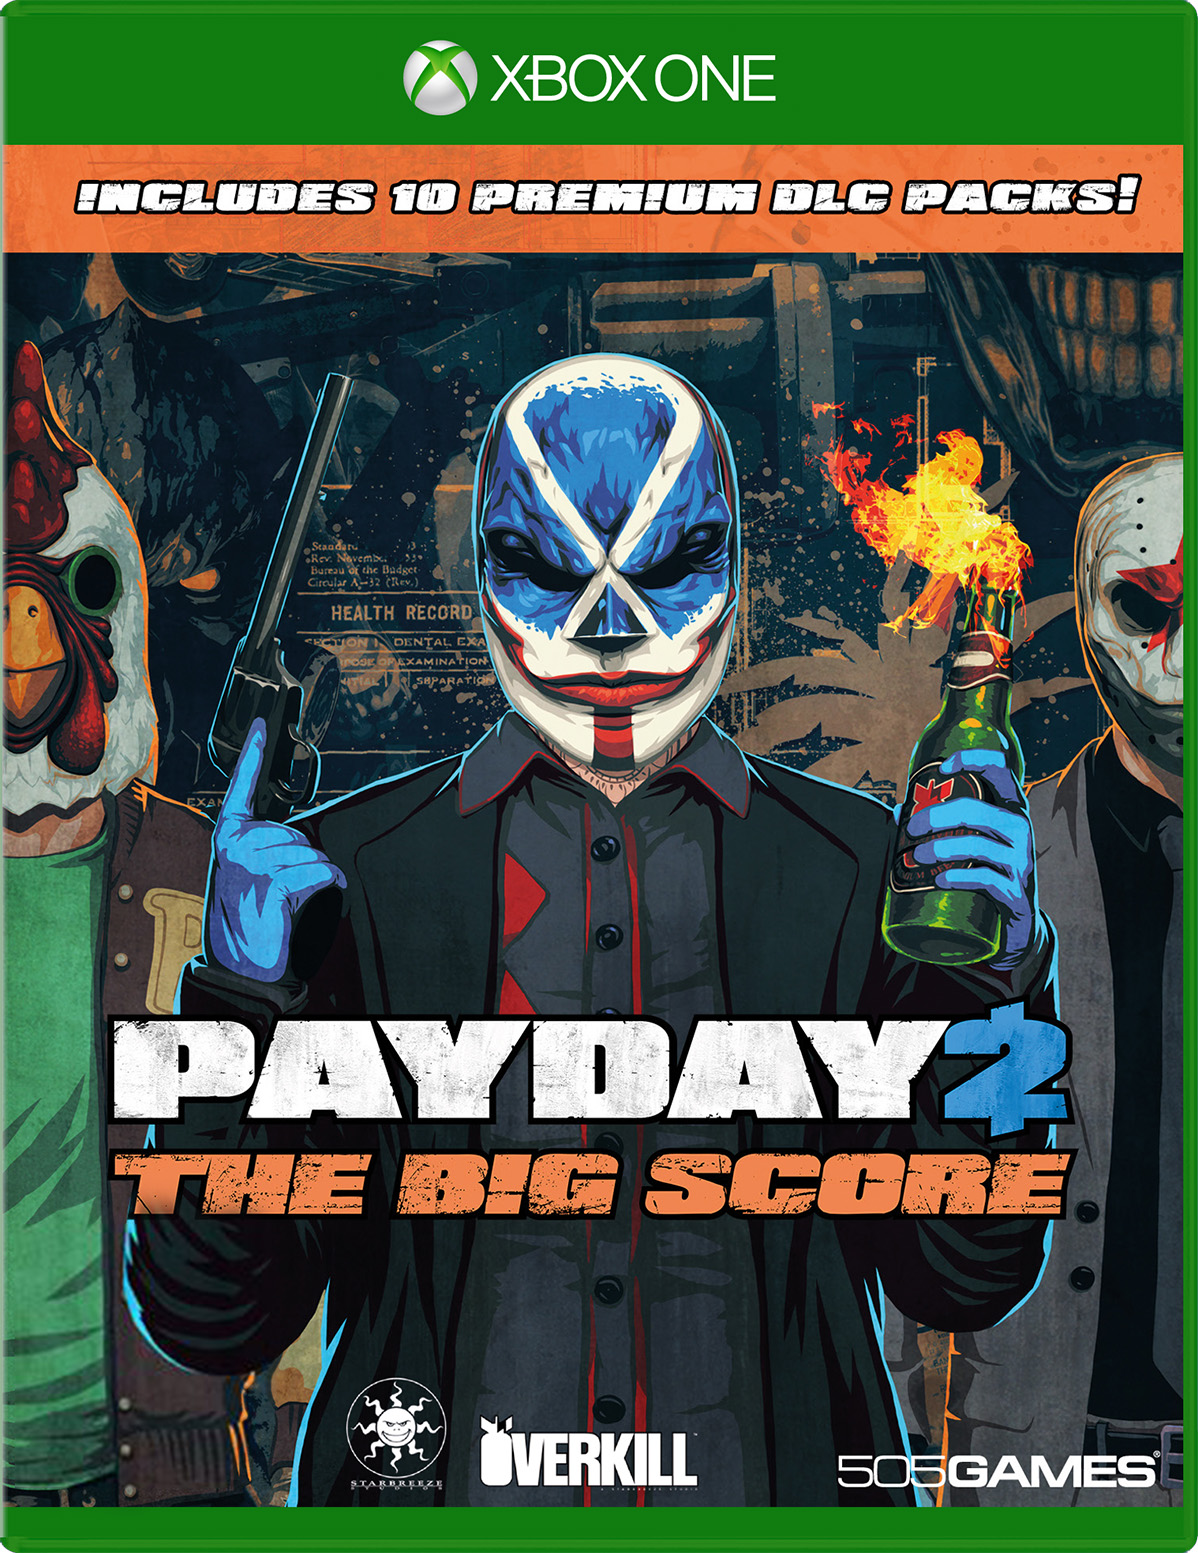 Payday 2: The Big Score for Xbox One